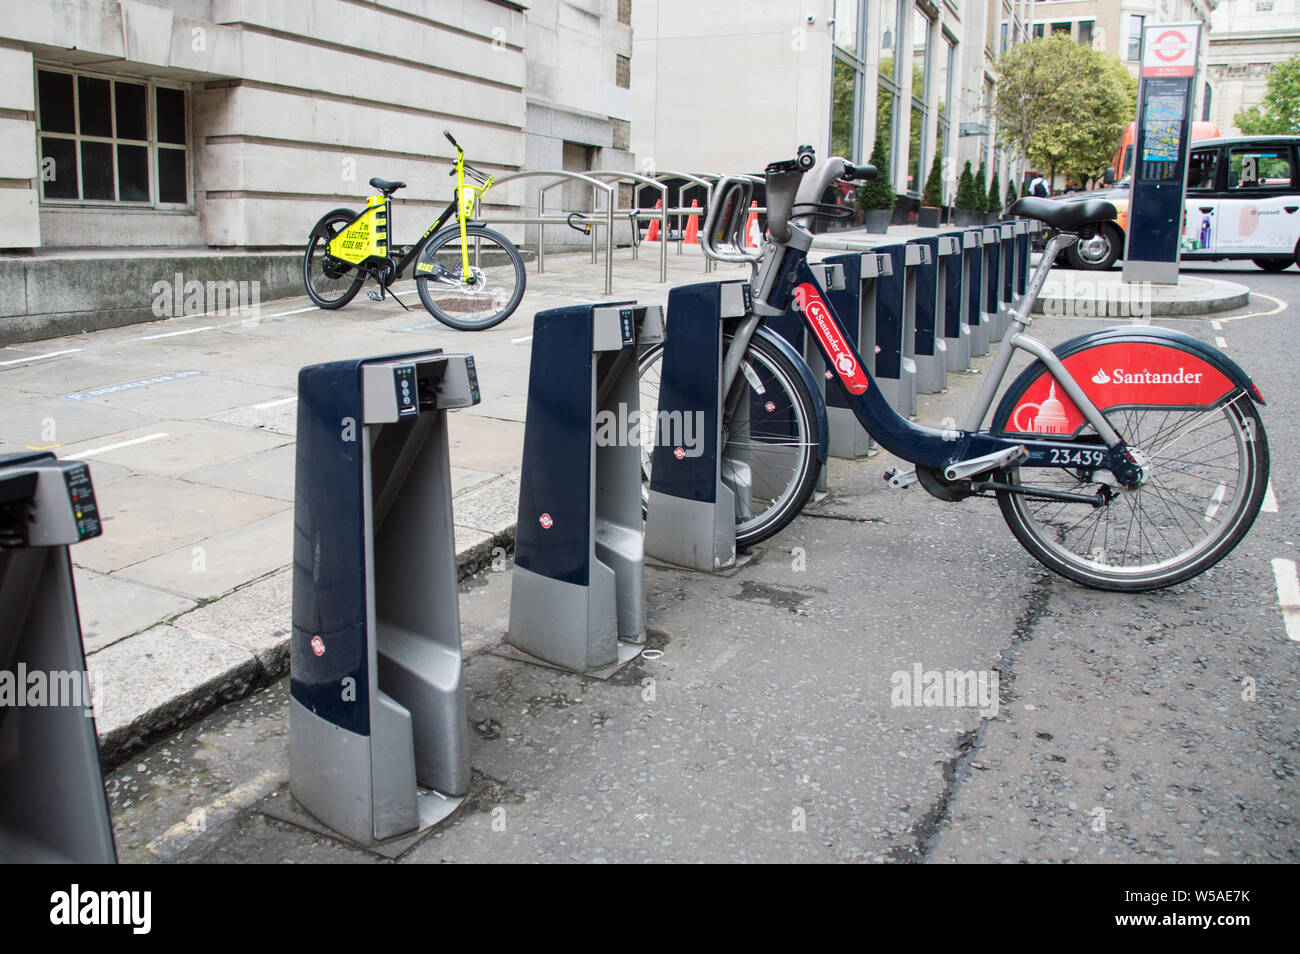 Ride sharing dockless electric bicycle Freebike and Santander City bicylces in London city Stock Photo